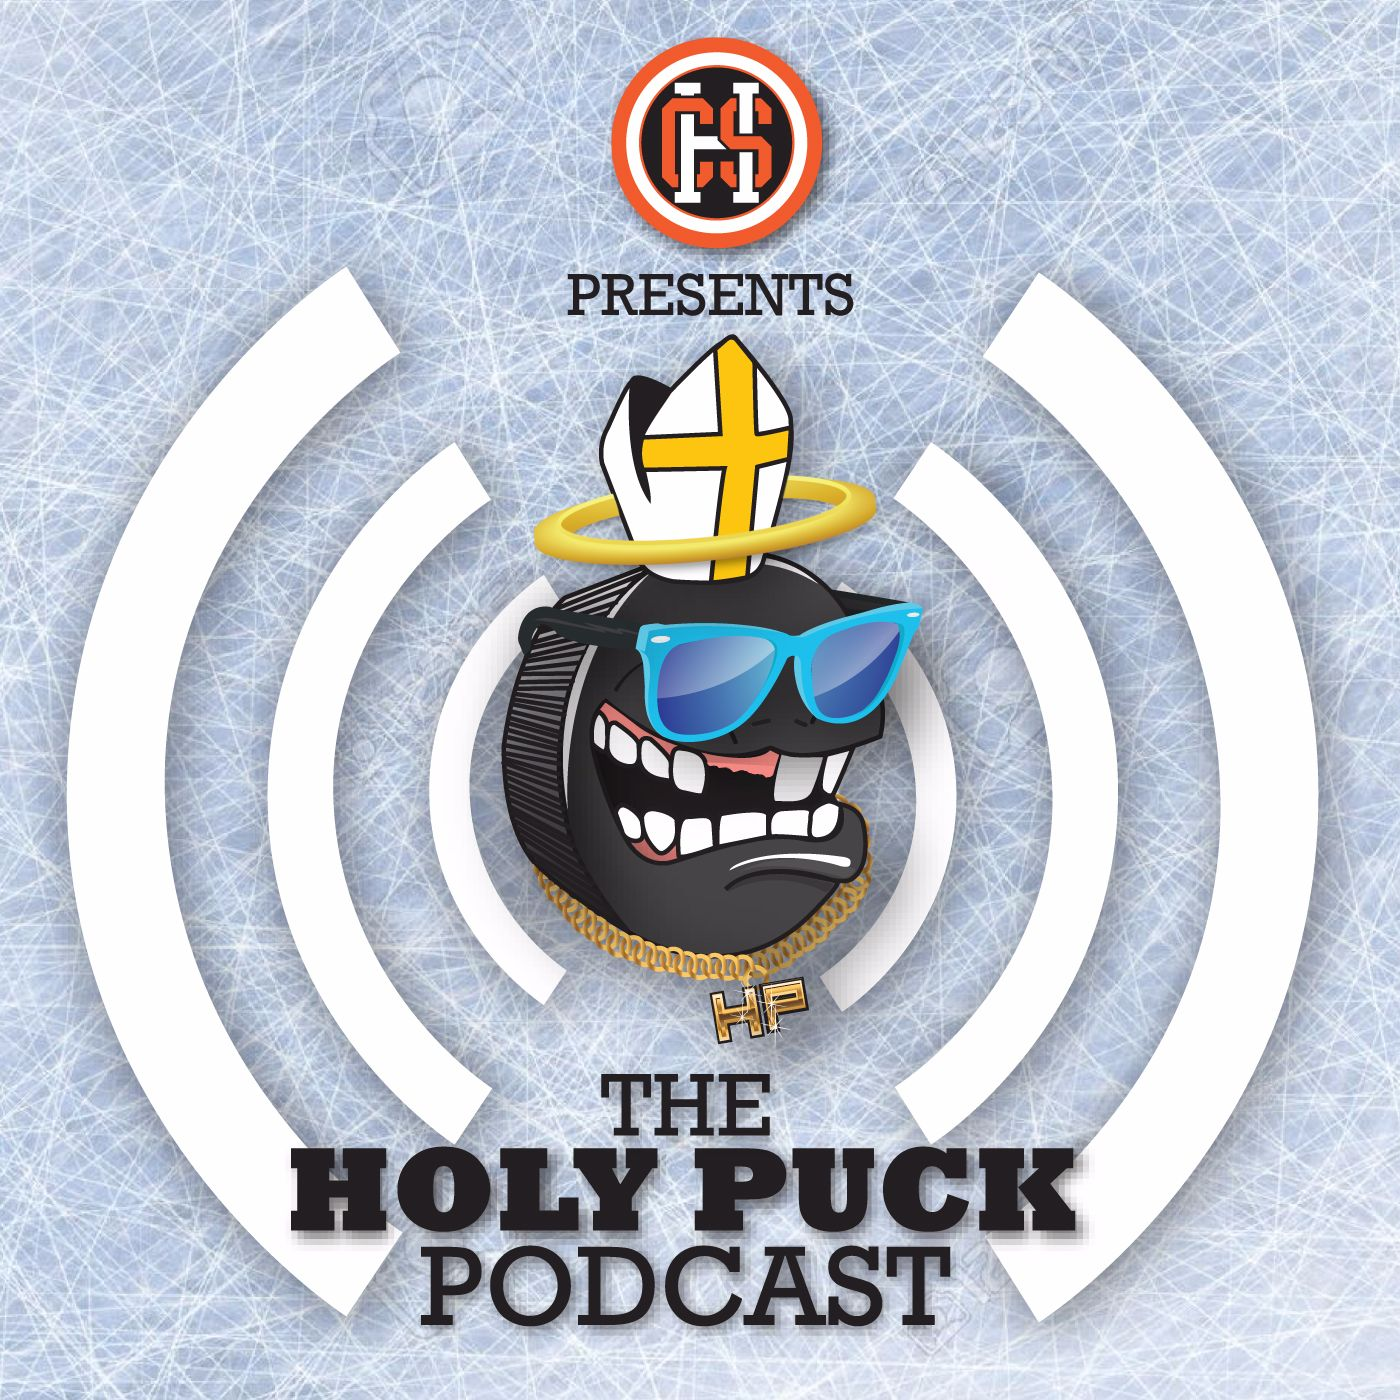 Holy Puck Podcast: Hockey News, Views and Abuse